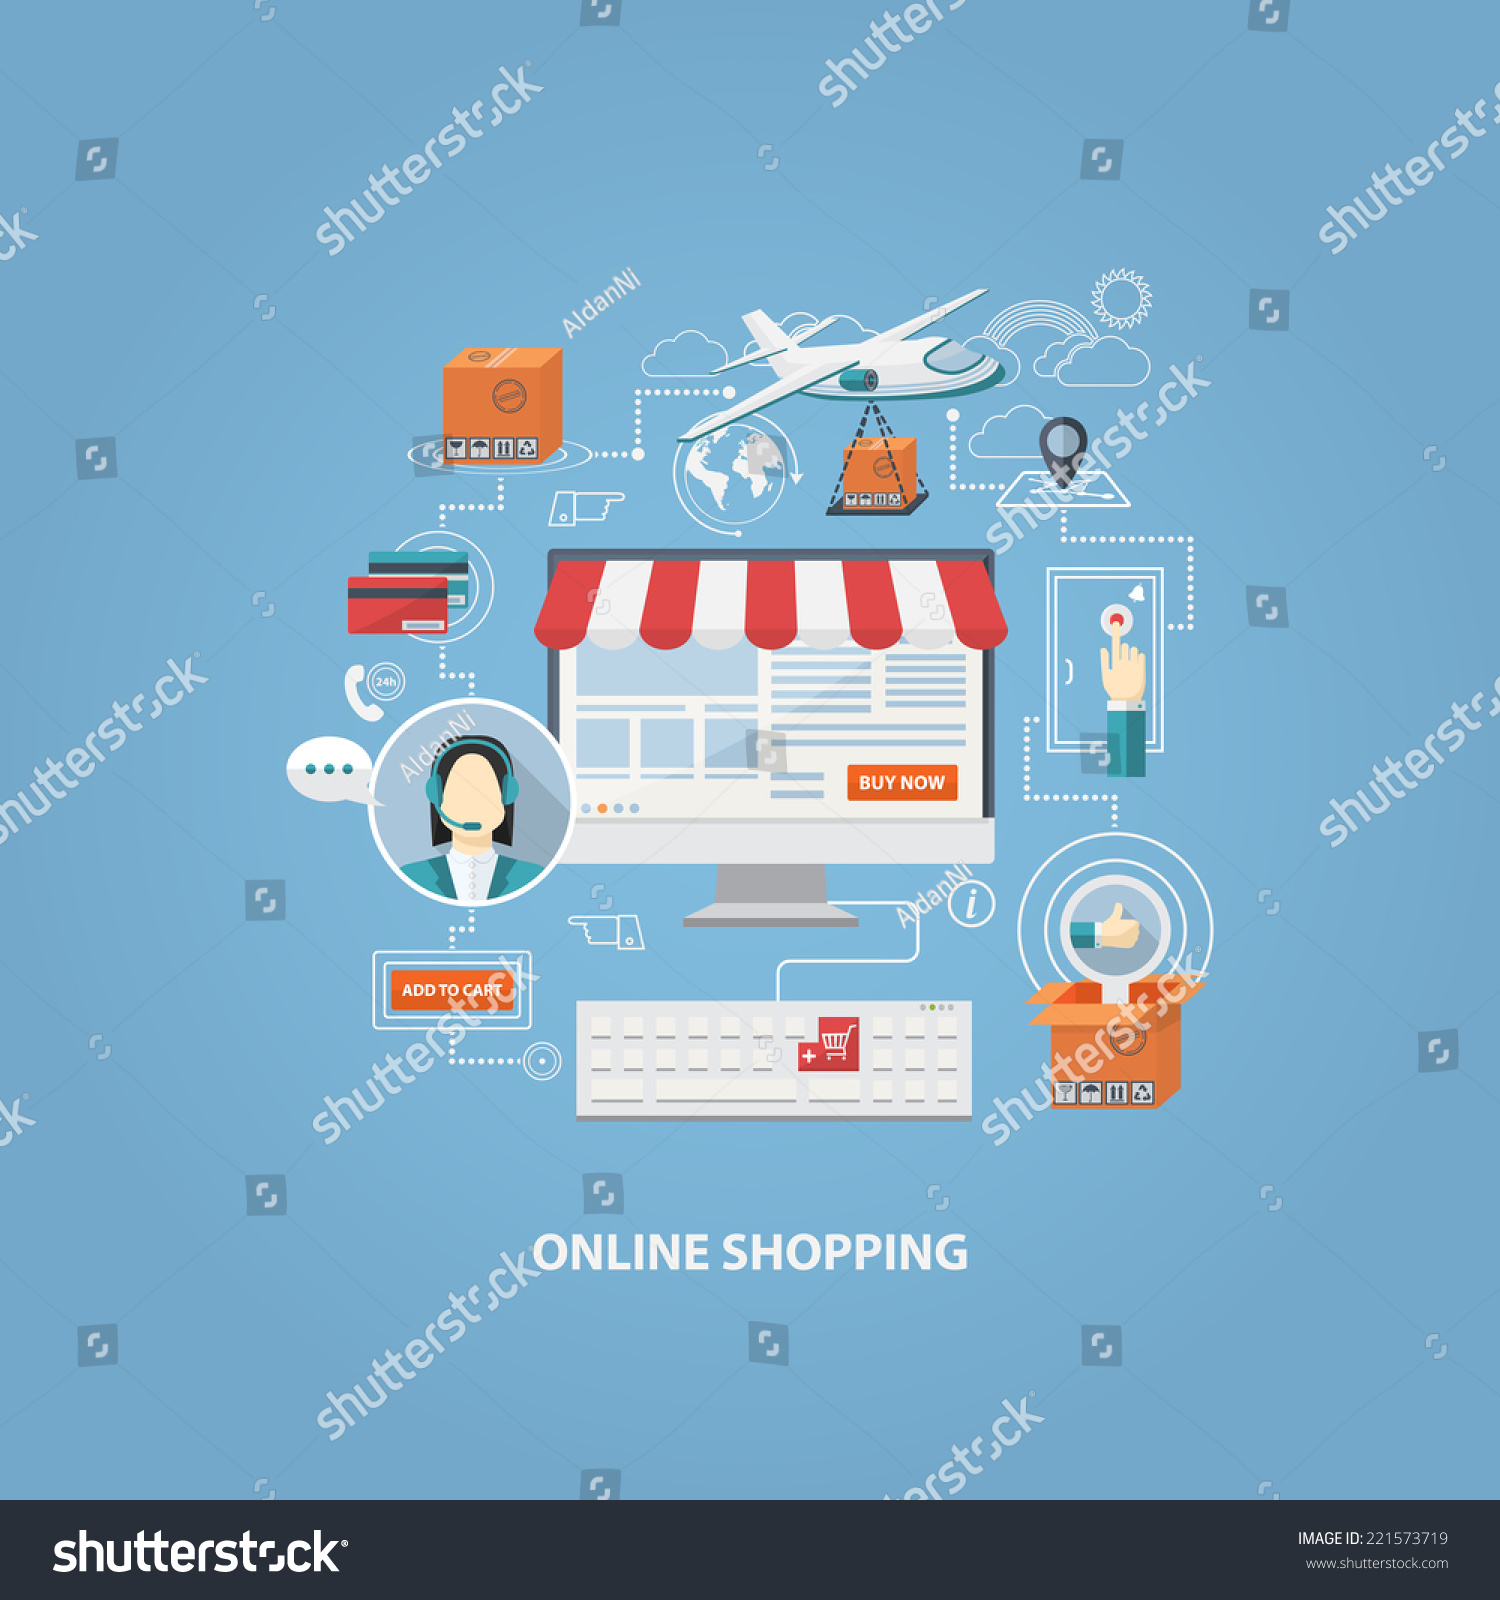 Poster Online Kaufen Vector Flat Design Shopping Conceptbuying Online Stock Vector (royalty Free) 221573719